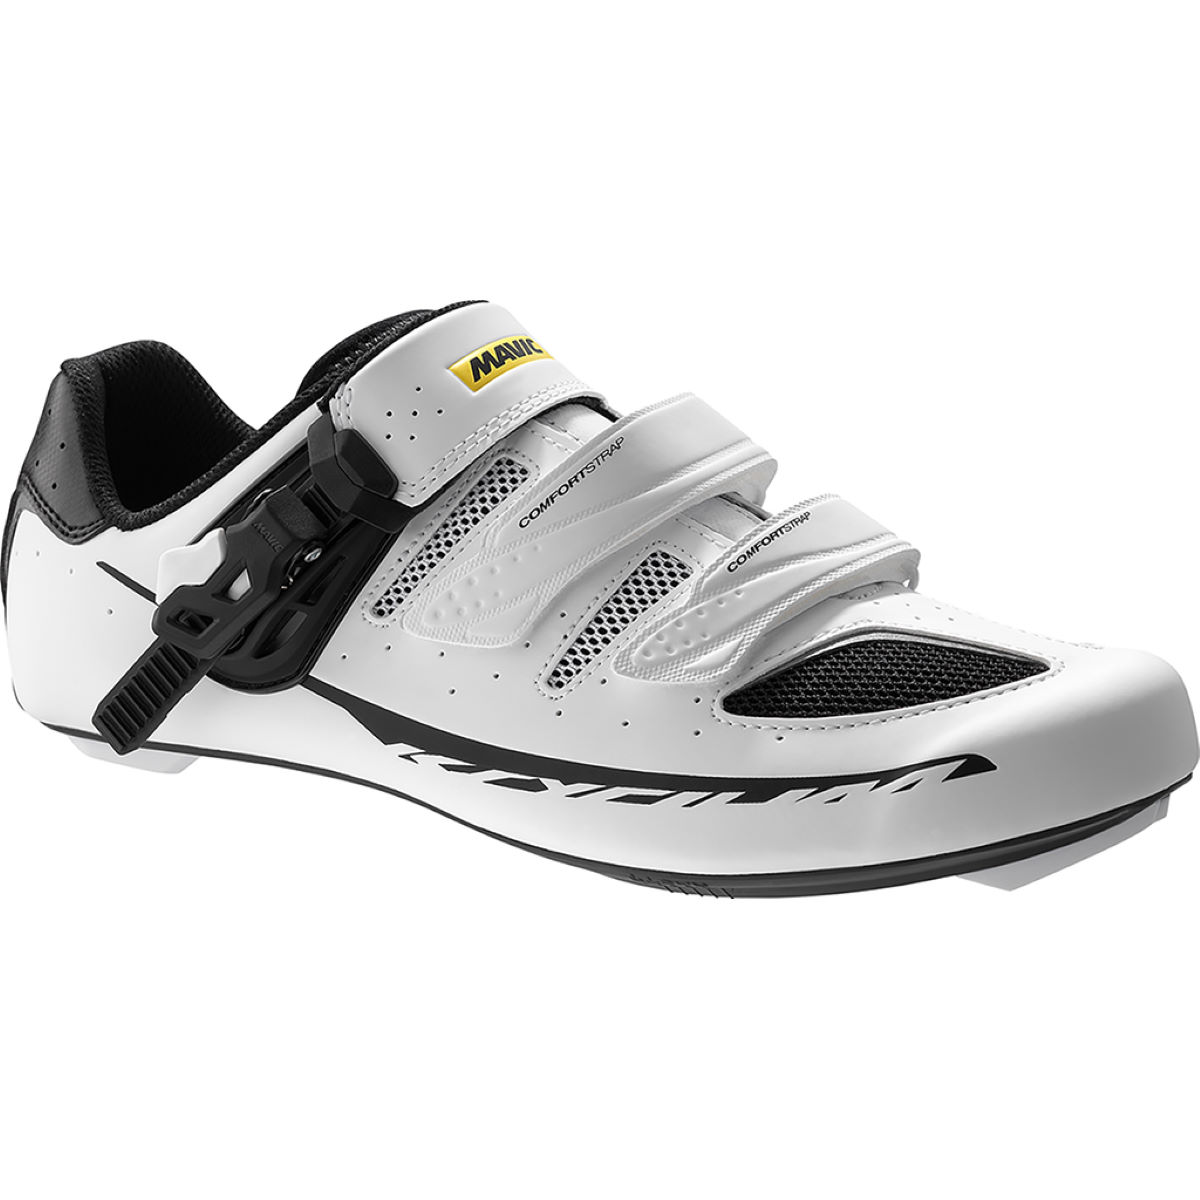 Chaussures Mavic Ksyrium Elite Maxi Fit II - 11 UK Blanc Chaussures de route